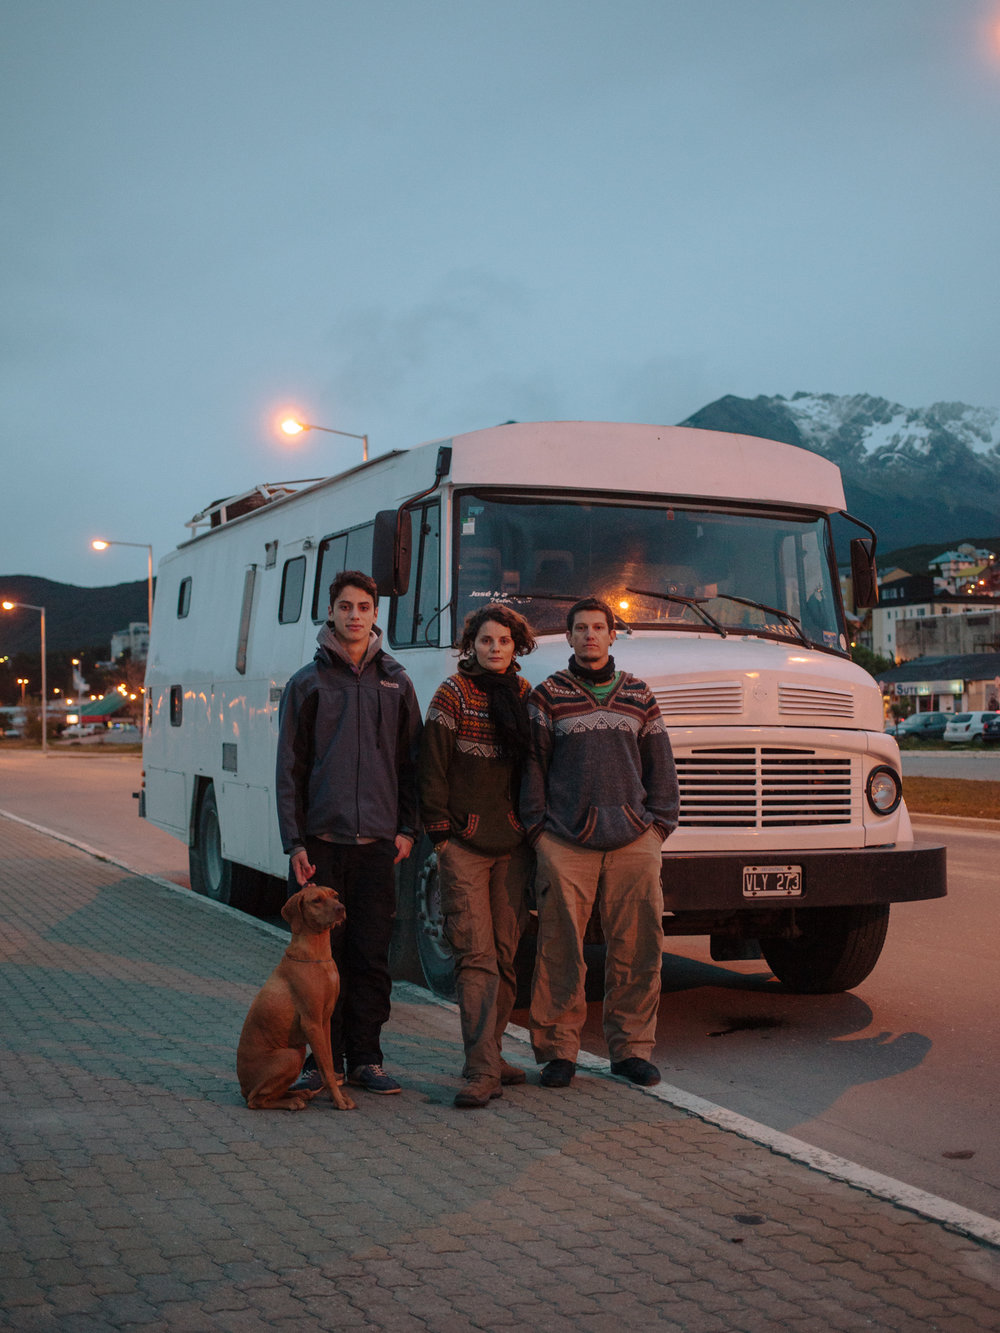 An Argentinian family traveling around South America on their van. Like them, people from all over the world chooses to undertake long road trips to reach the very end of the world here in Ushuaia.